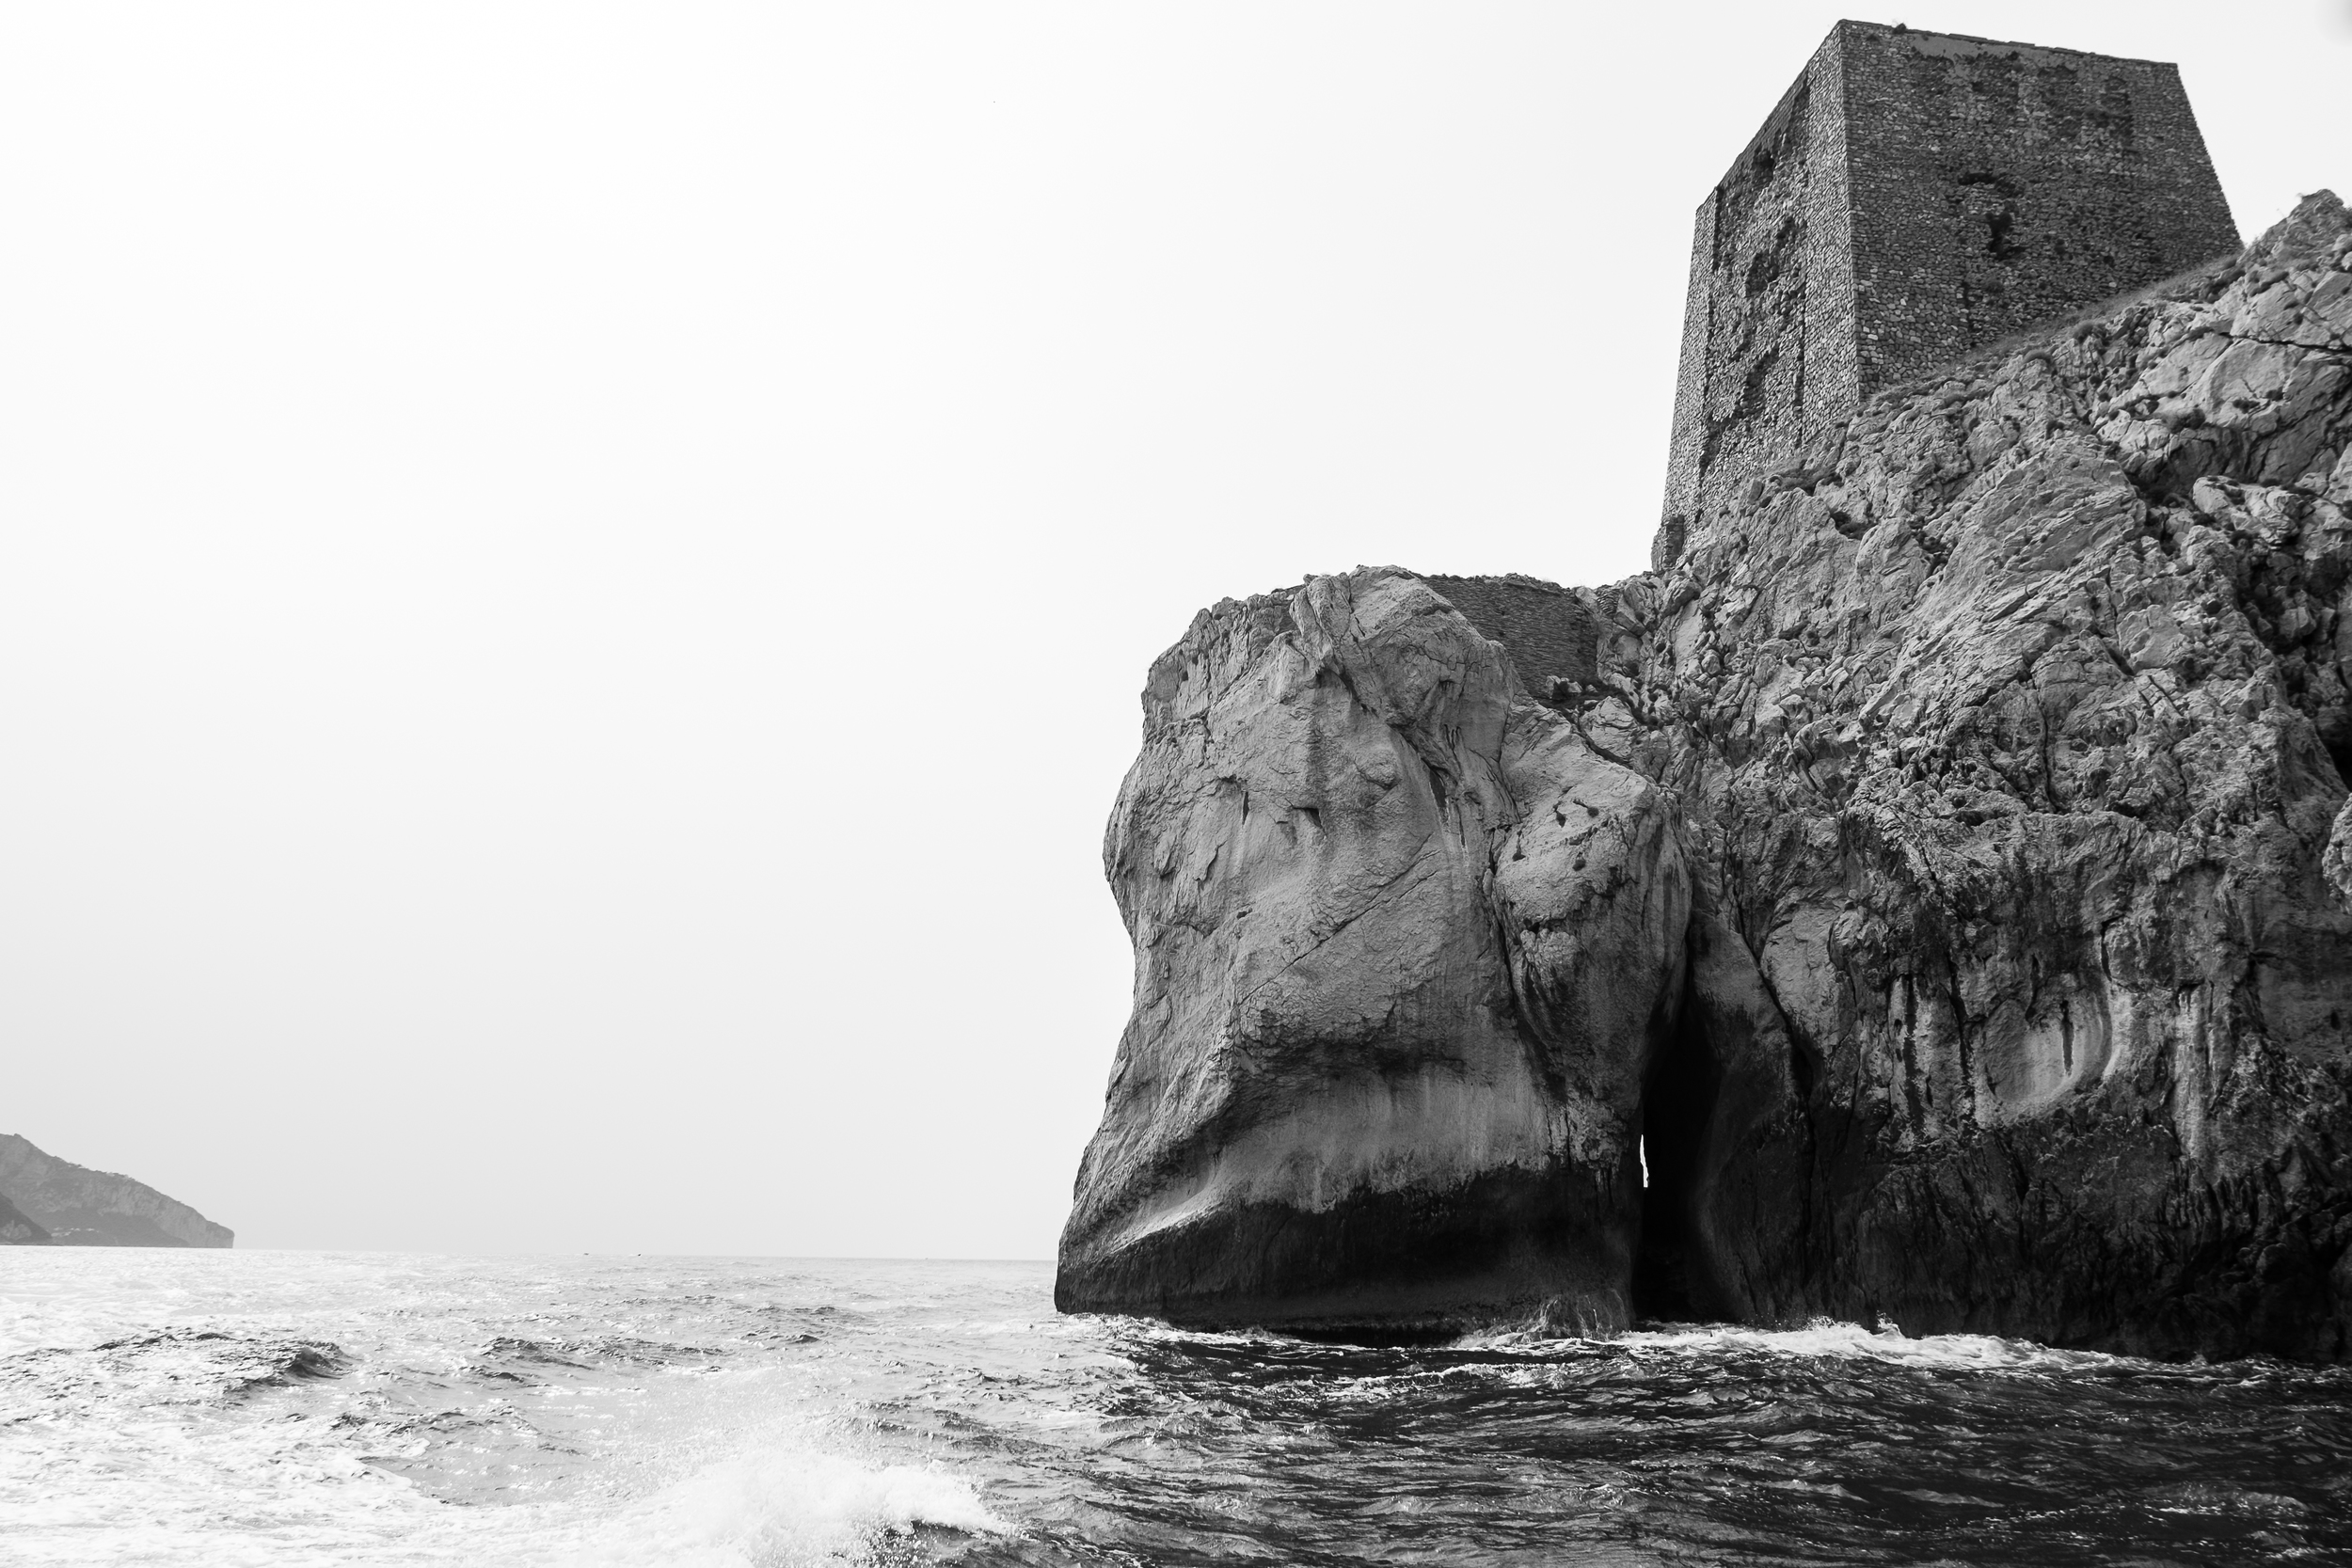 These Saracen towers dot along the entire coast, once used to send smoke signals between them, warning of invaders and other threats. Today, many are private homes and hotels.